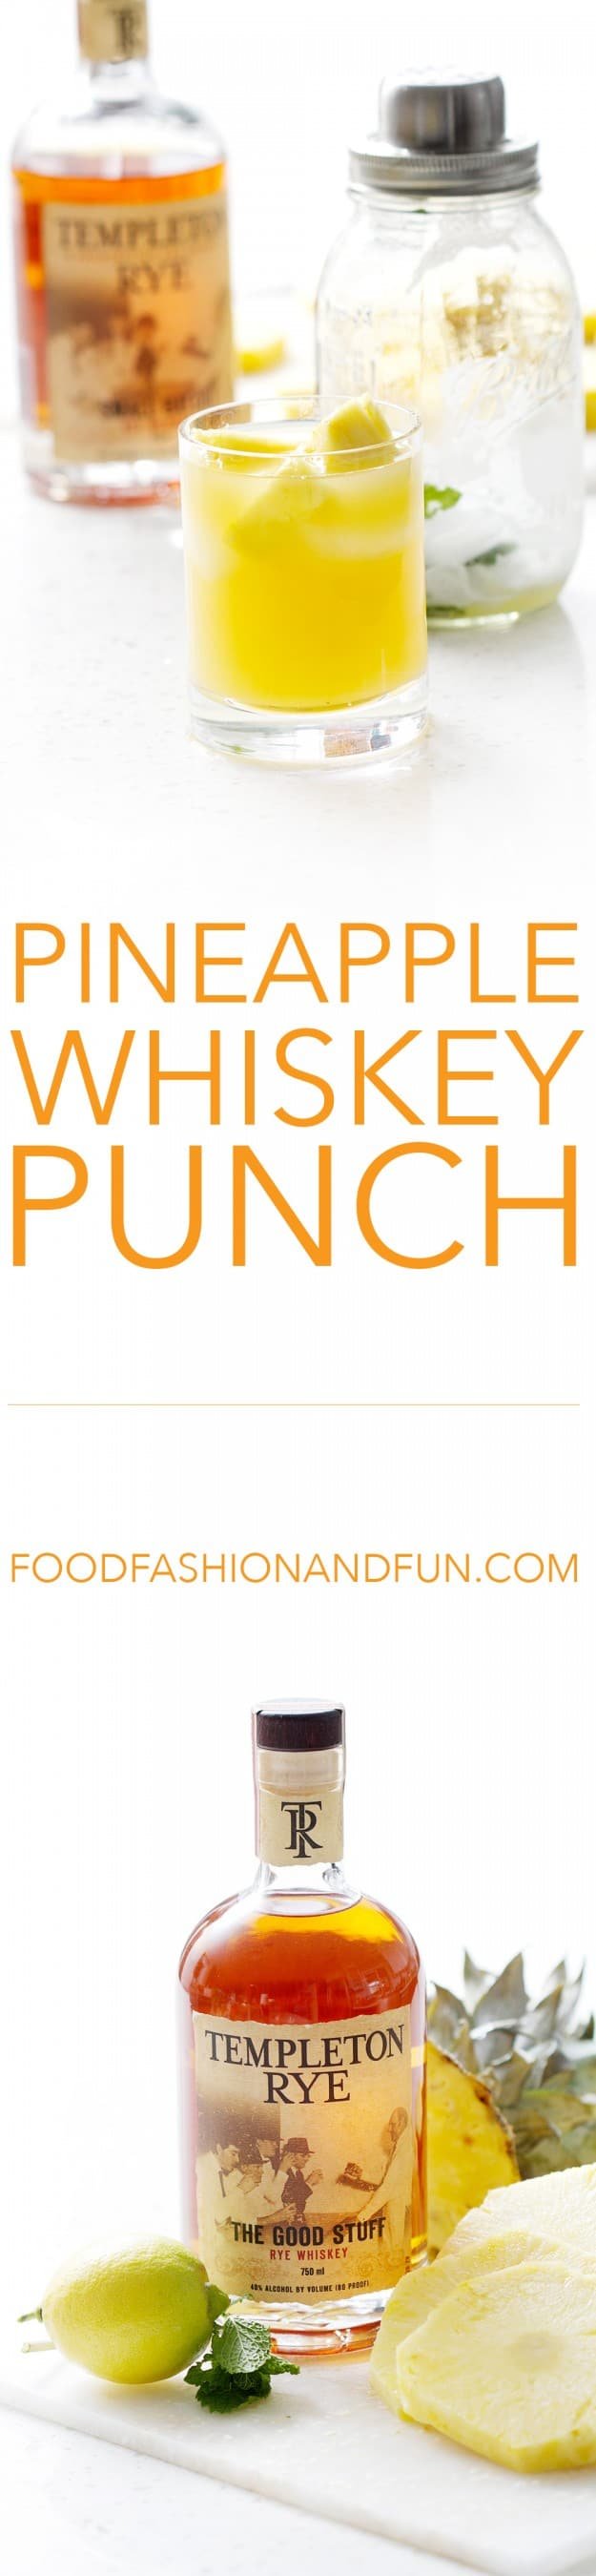 pineapple whiskey punch | food fashion and fun.